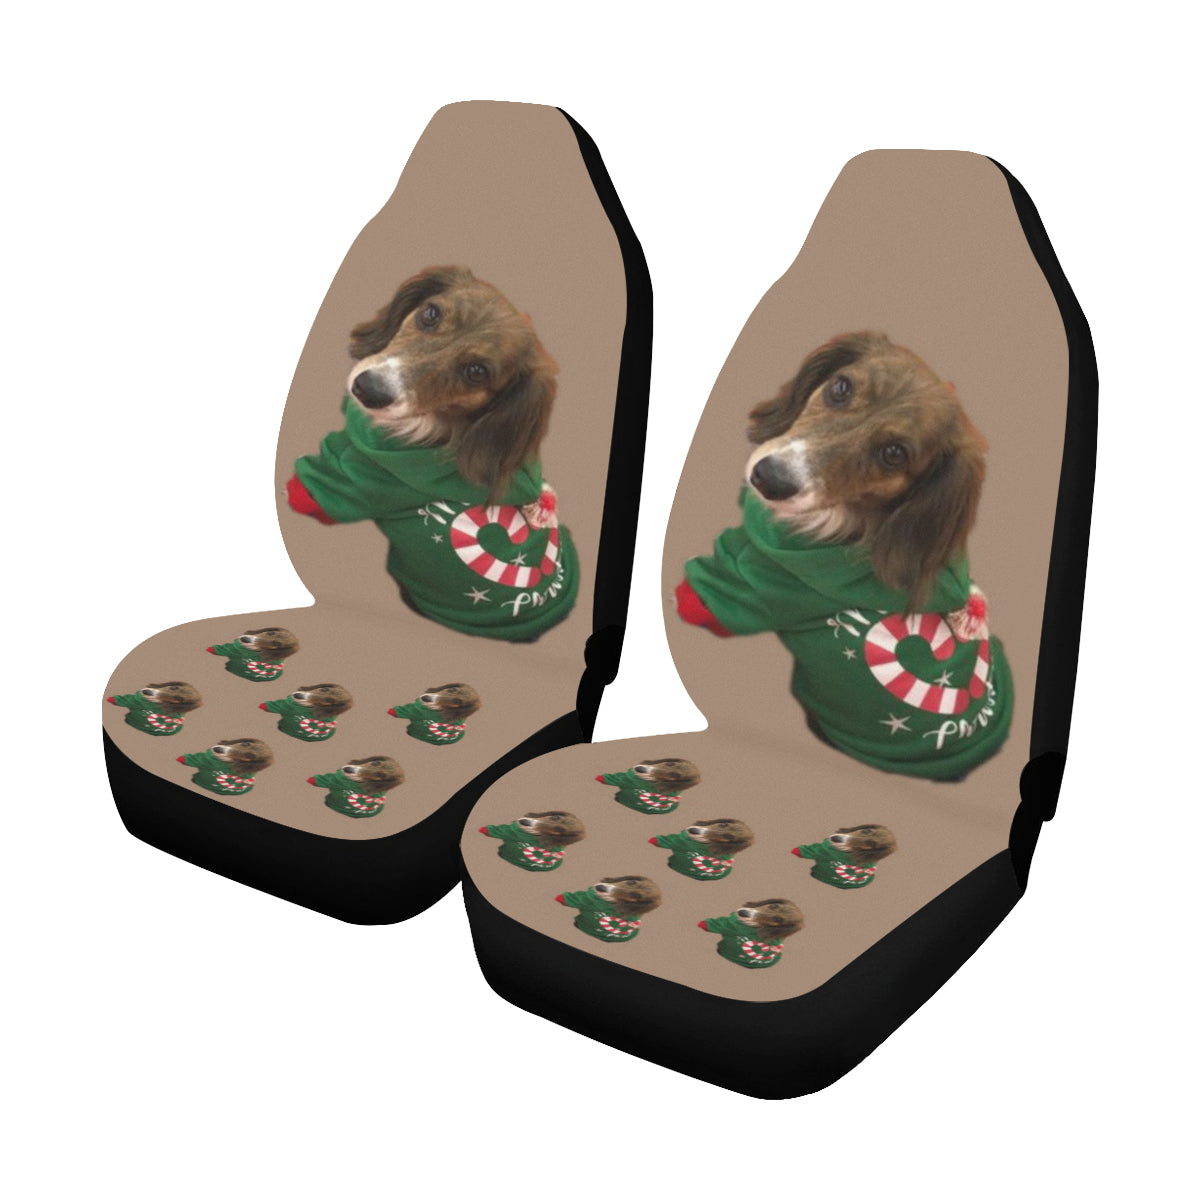 Long Haired Dachshund Car Seat Covers - Lori